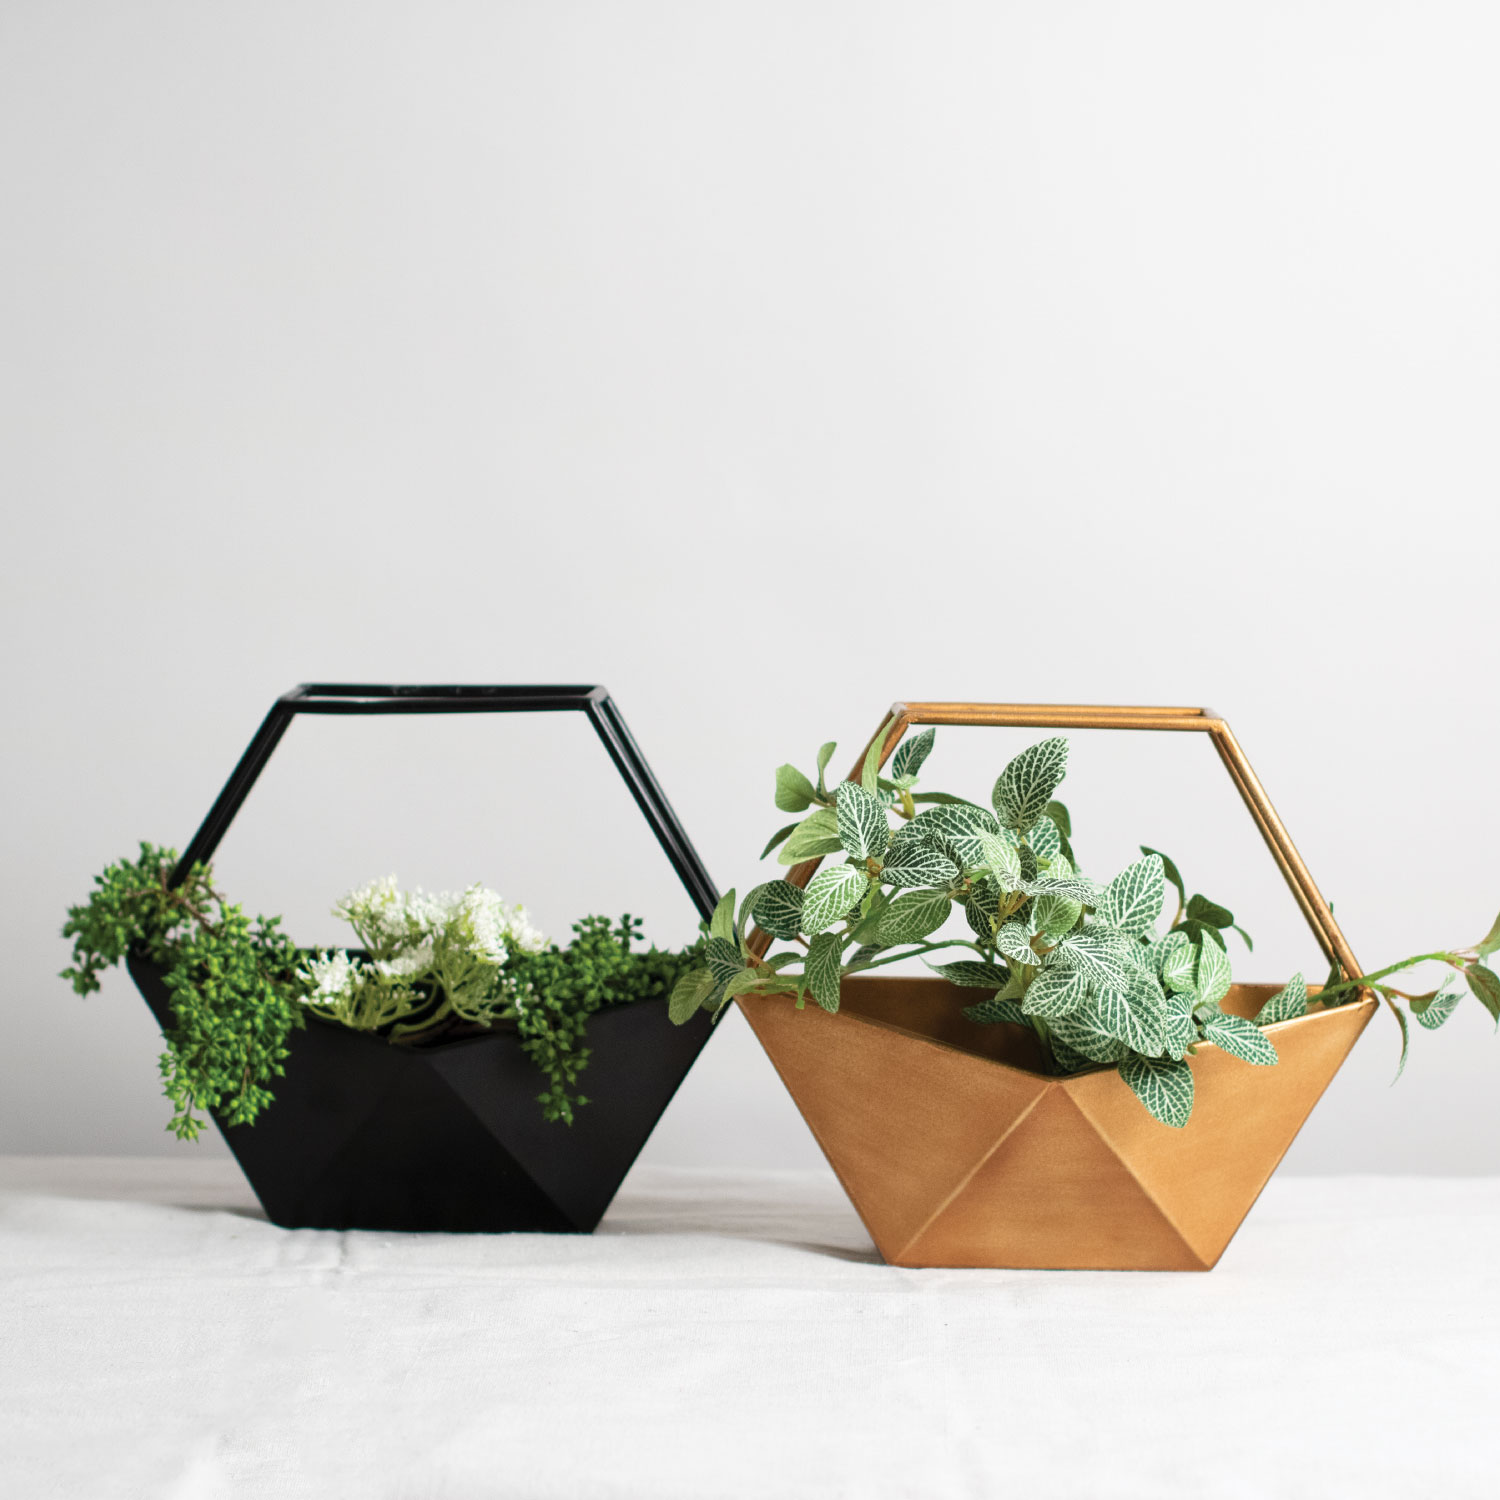 Items Shown: Geo Conservatory Planter  Black ,  Bronze